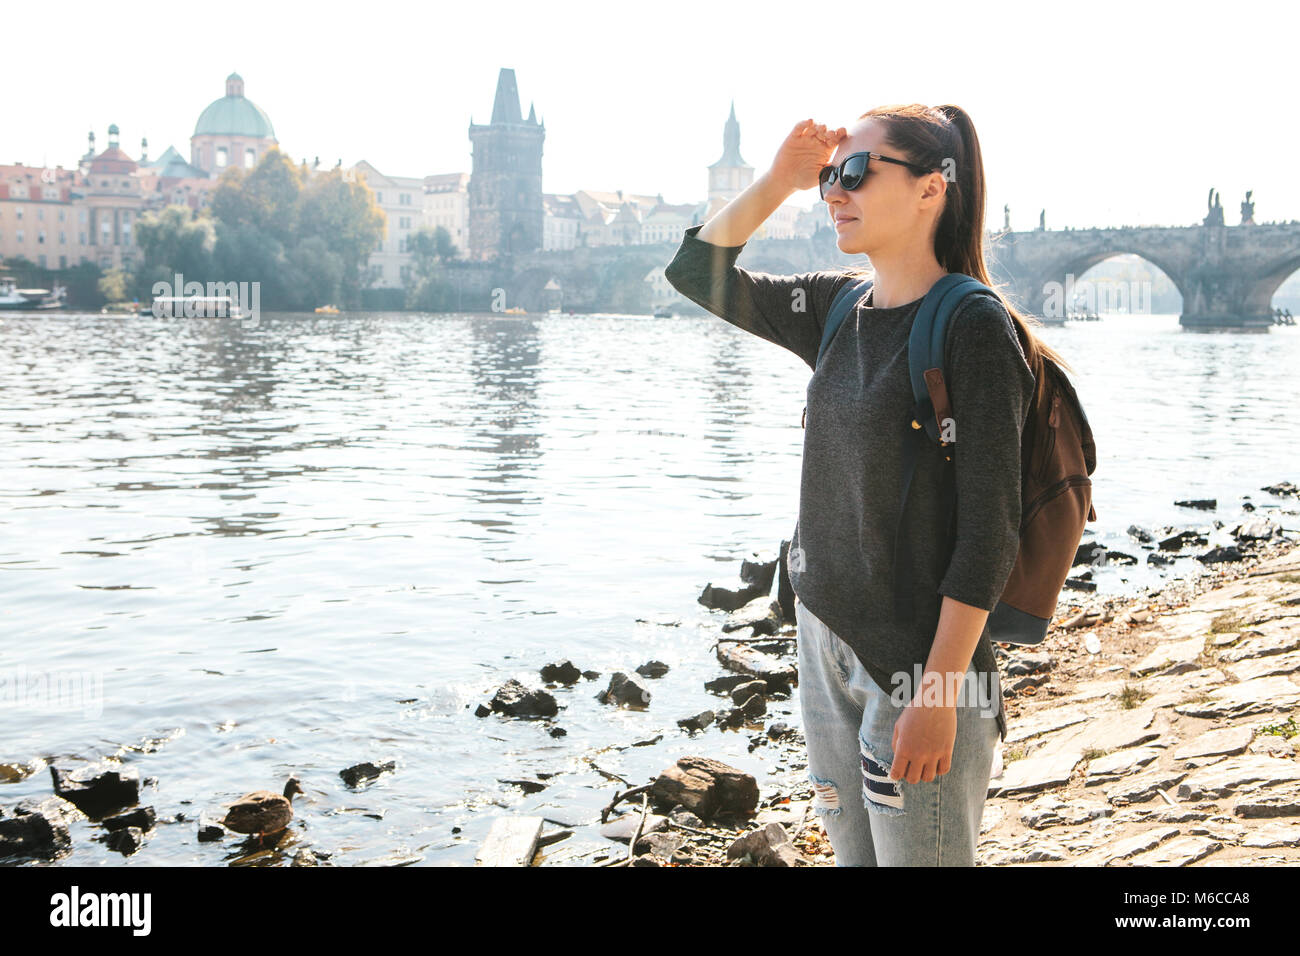 3b5f87926545 A beautiful young tourist girl with a backpack stands next to the river  Vltava in Prague and admires the architecture of the city.